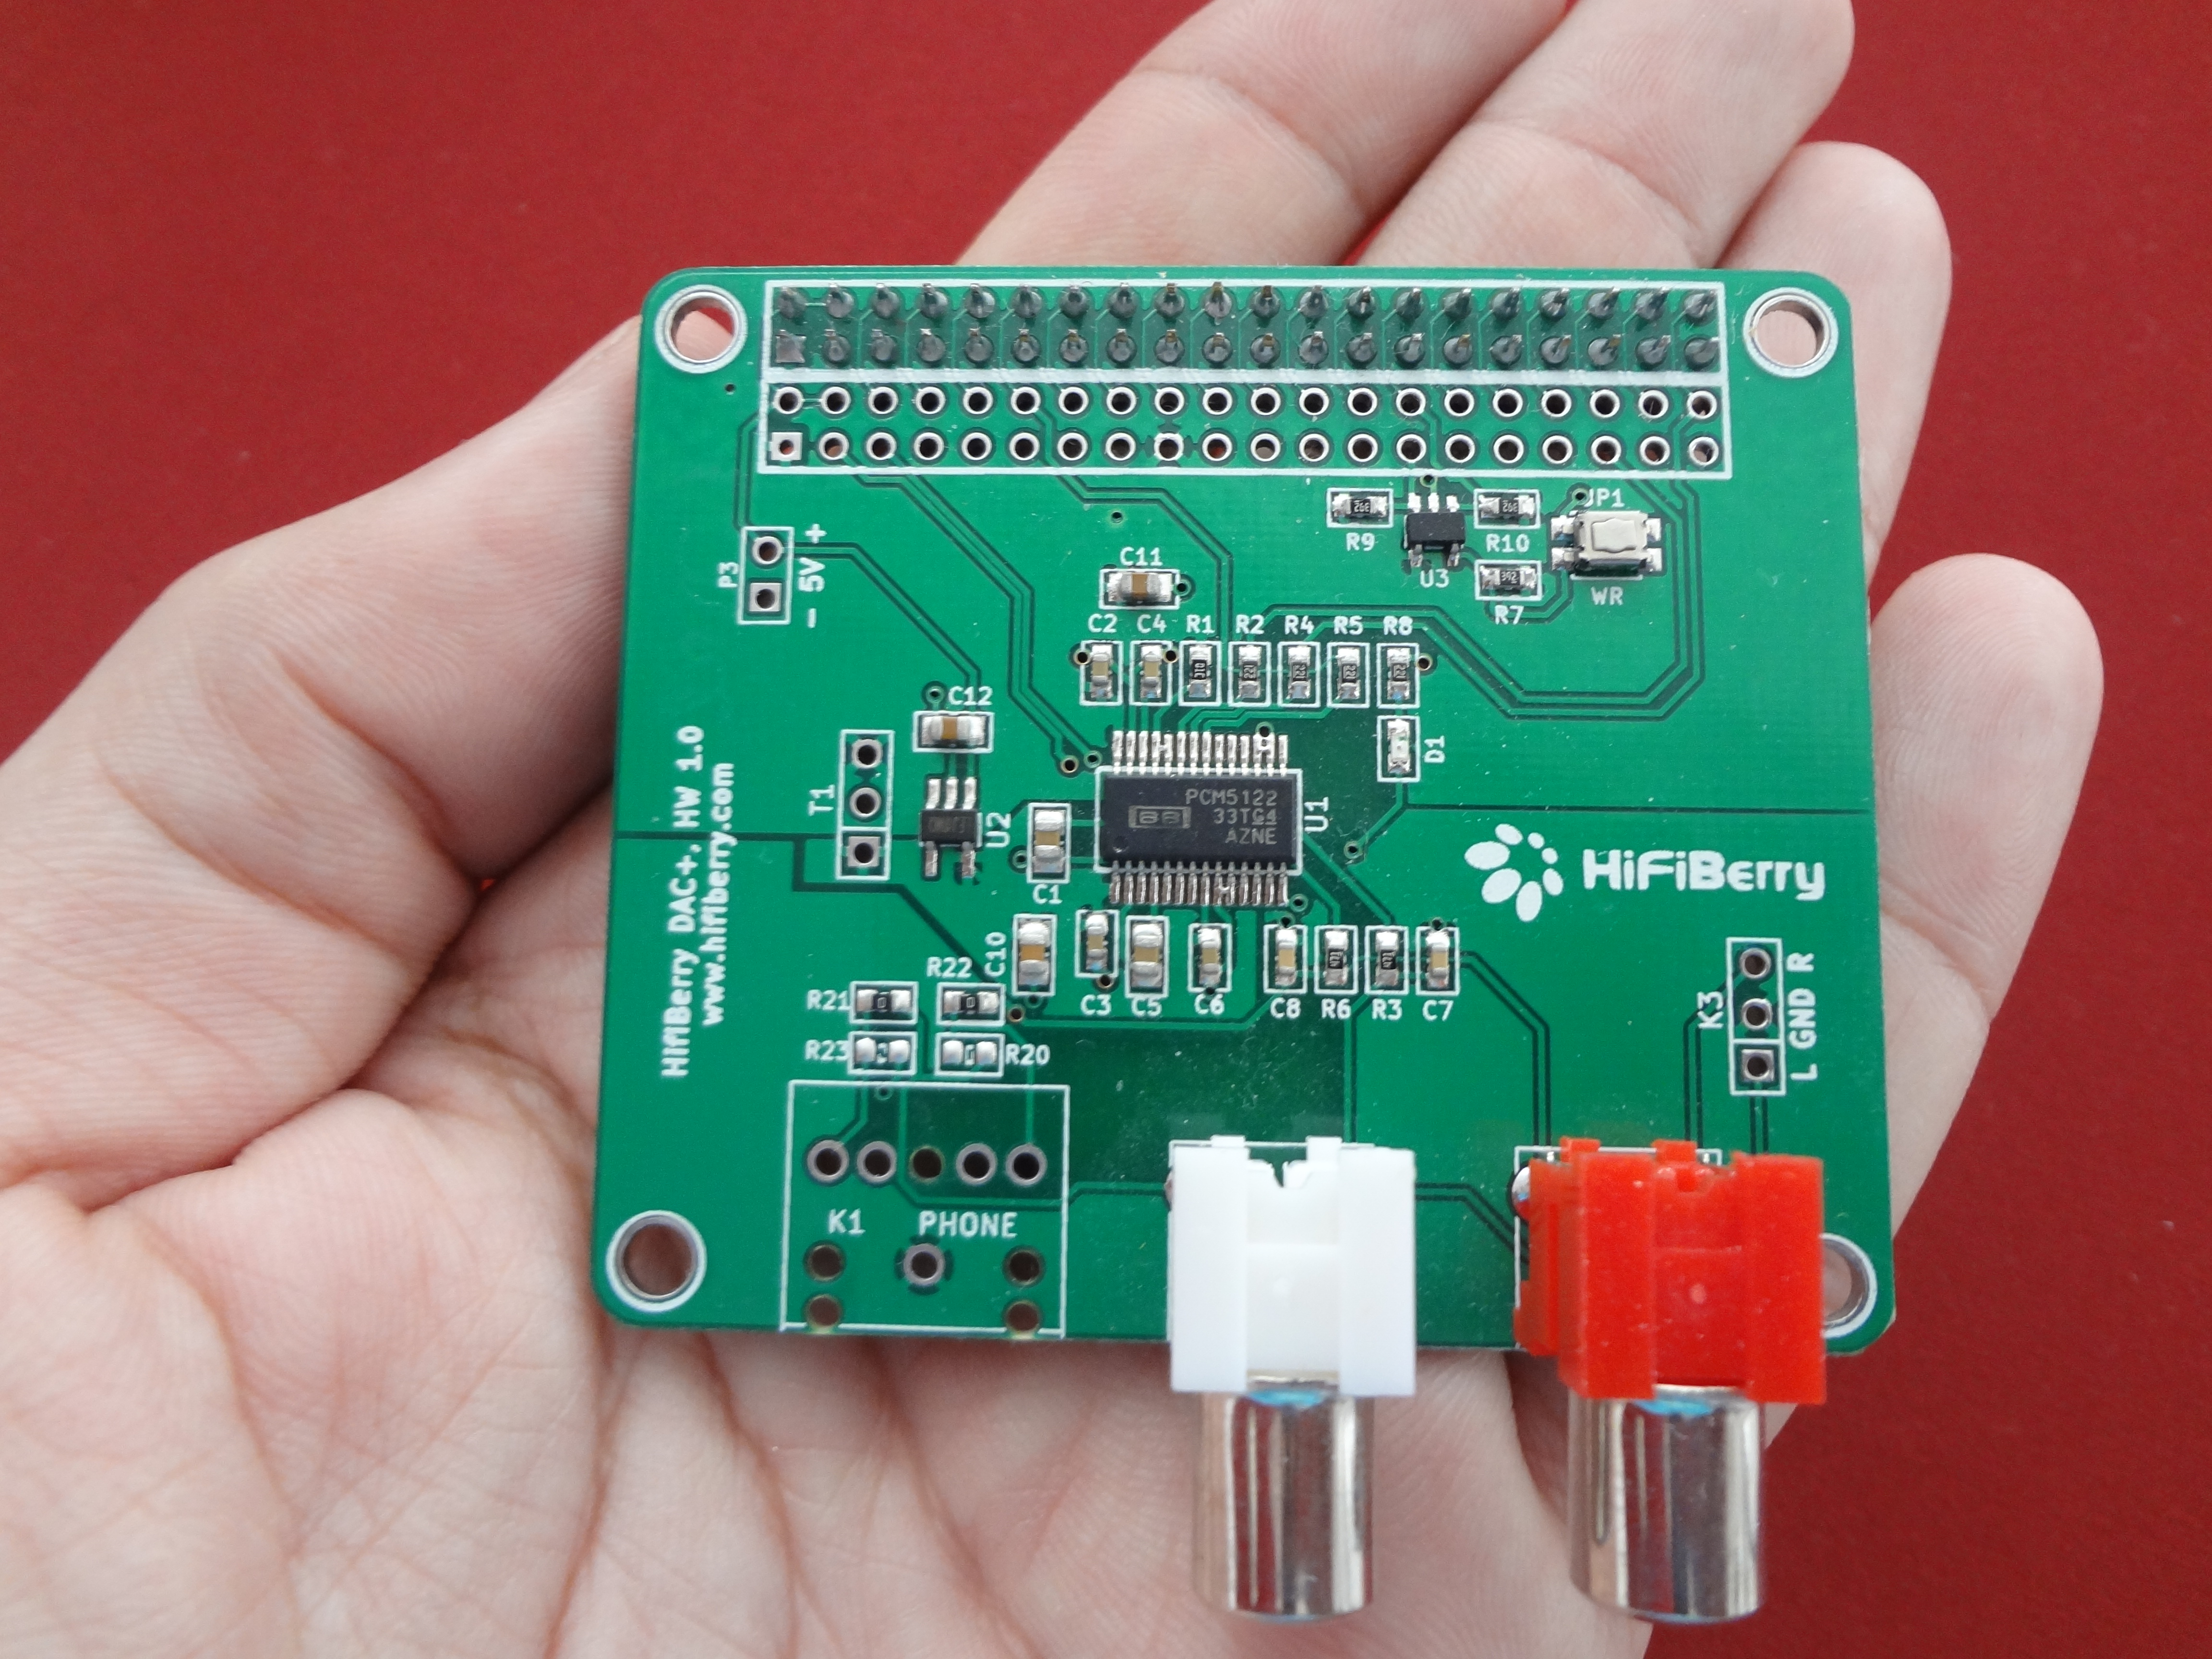 Review Raspberry Pi 2 As Music Streamer Part Time Audiophile Amazoncom Diy Circuit Board 3d Plastic Case For Samsung Galaxy Note2 It Would Be Out Of Purpose This Introductory Article To Go Into Details Since Both Operating Systems Receive Outstanding Support By Their Respective